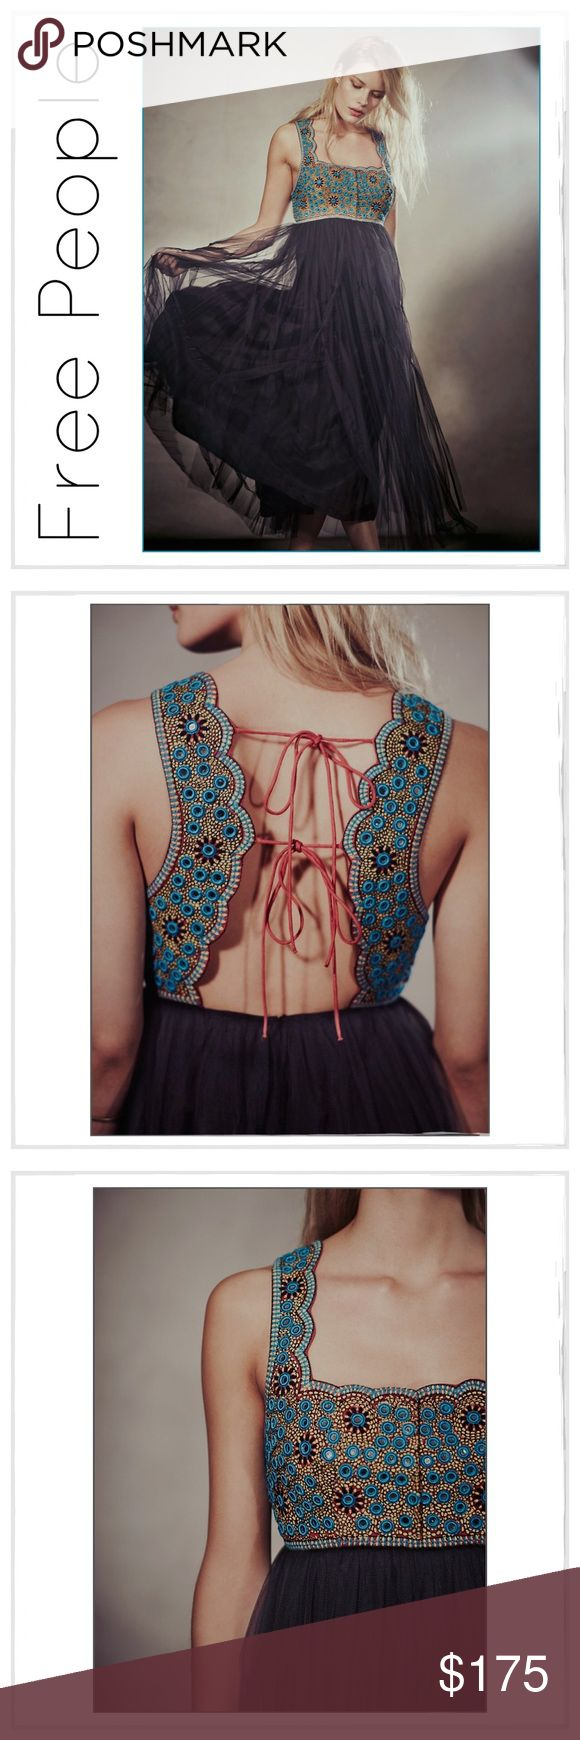 """✨Free People 'Midnight Kiss' Dress✨ ✨Free People 'Midnight Kiss' Dress✨This gorgeous maxi features a vibrant bodice, embellished with mirrors framed with intense turquoise embroidery✨Scalloped neck with corset style hook and eye closure✨Deep dip scalloped back with two tie closures✨Knotted net skirt with hidden zip closure in back✨Approx 50"""" Long✨NWT✨Size 6✨ Free People Dresses Midi"""